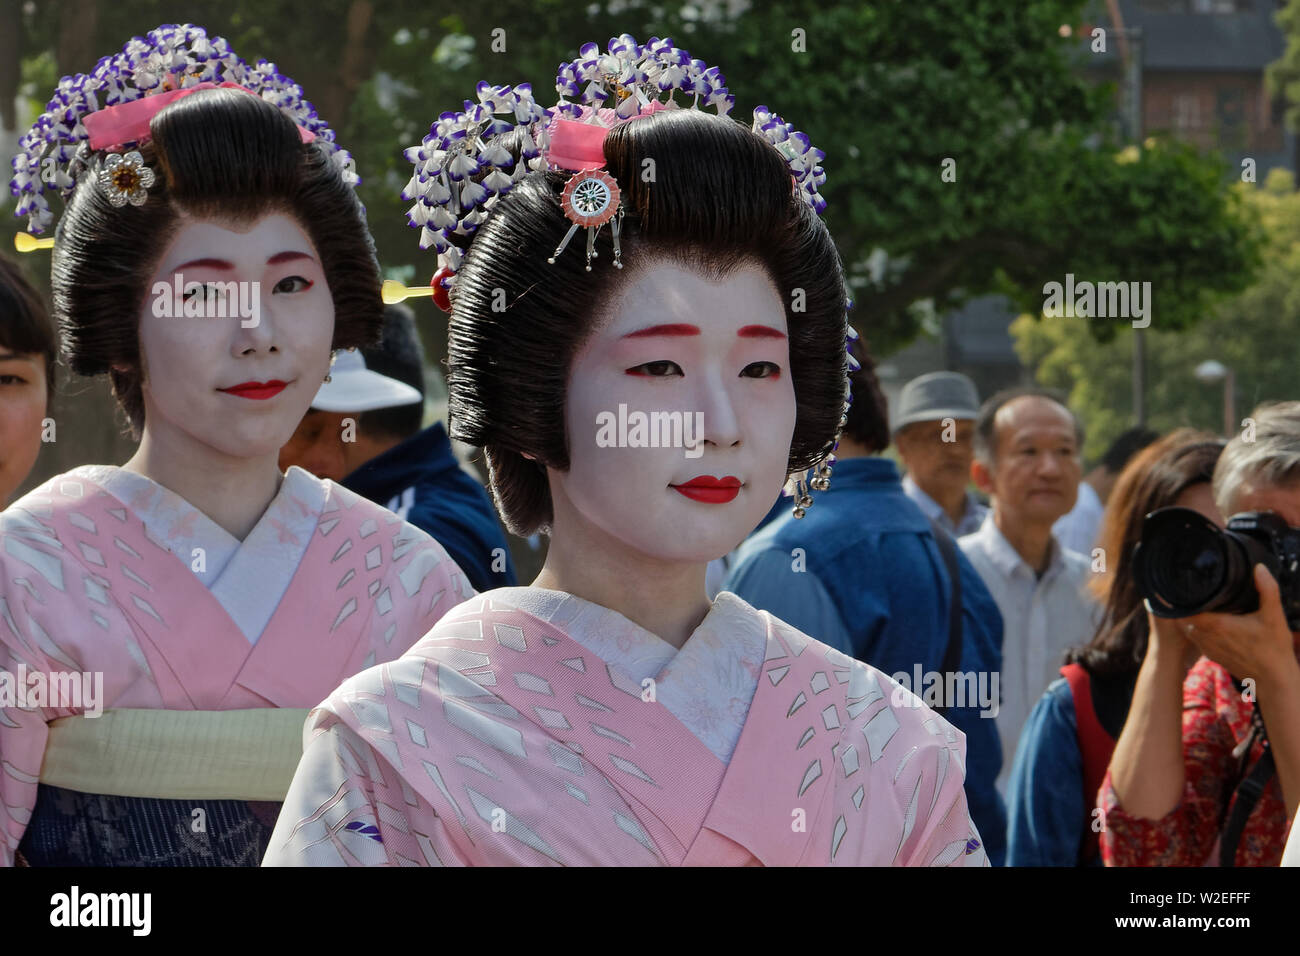 TOKYO, JAPAN, May 18, 2019 : Geishas during Sanja Matsuri, one of the great Shinto festivals of Tokyo and is held in May, in Asakusa district, around - Stock Image